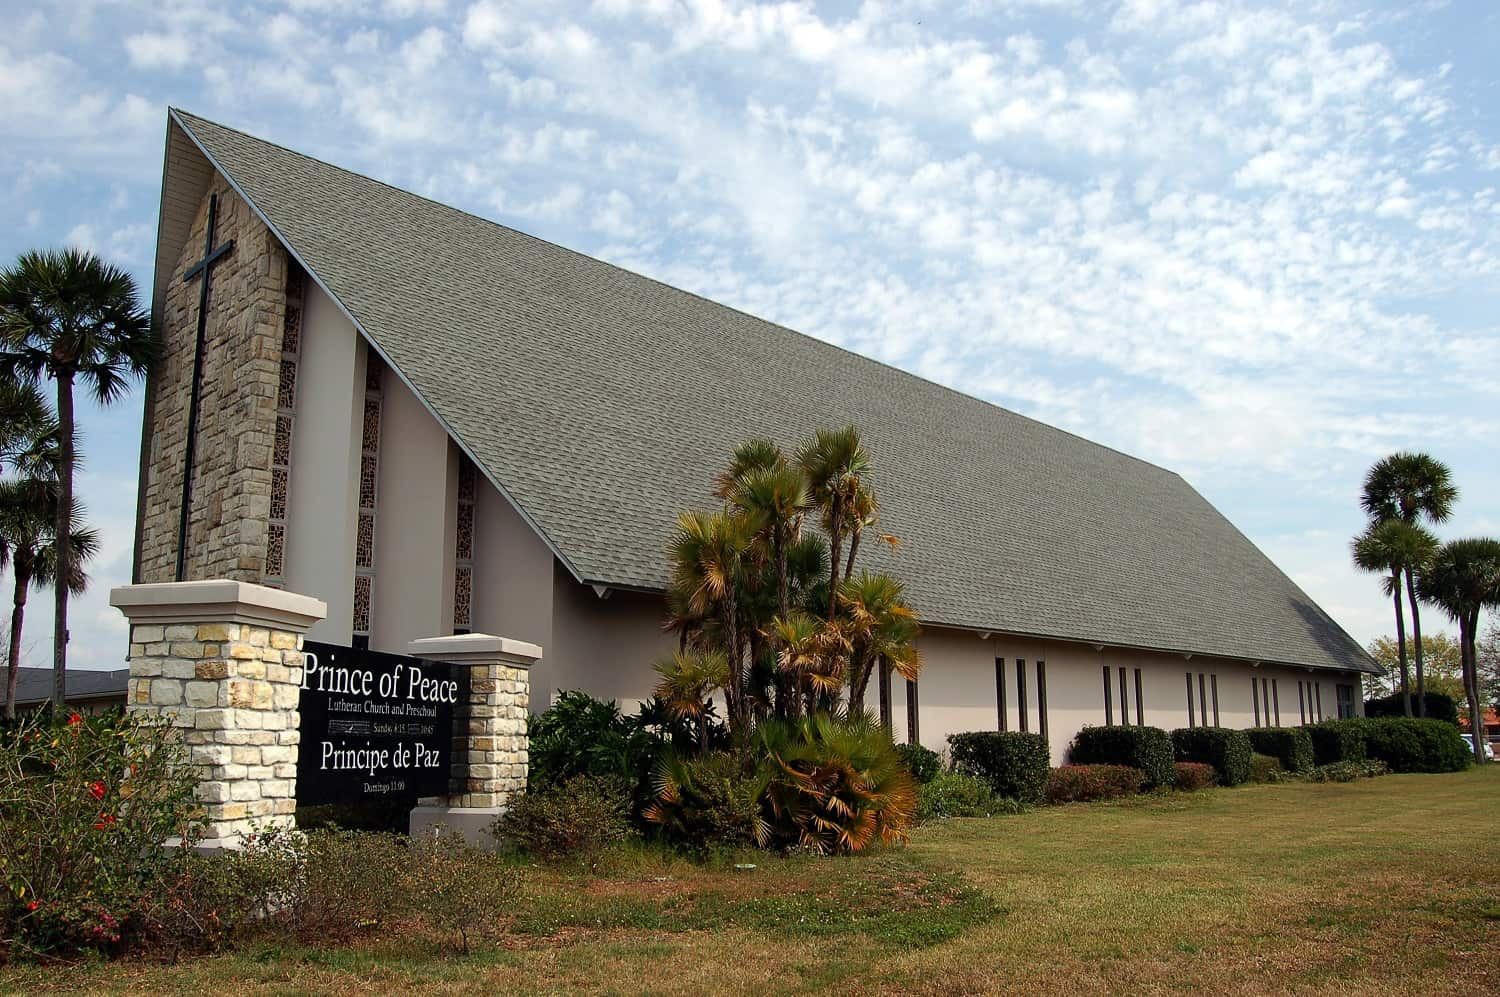 Prince of Peace Lutheran Church